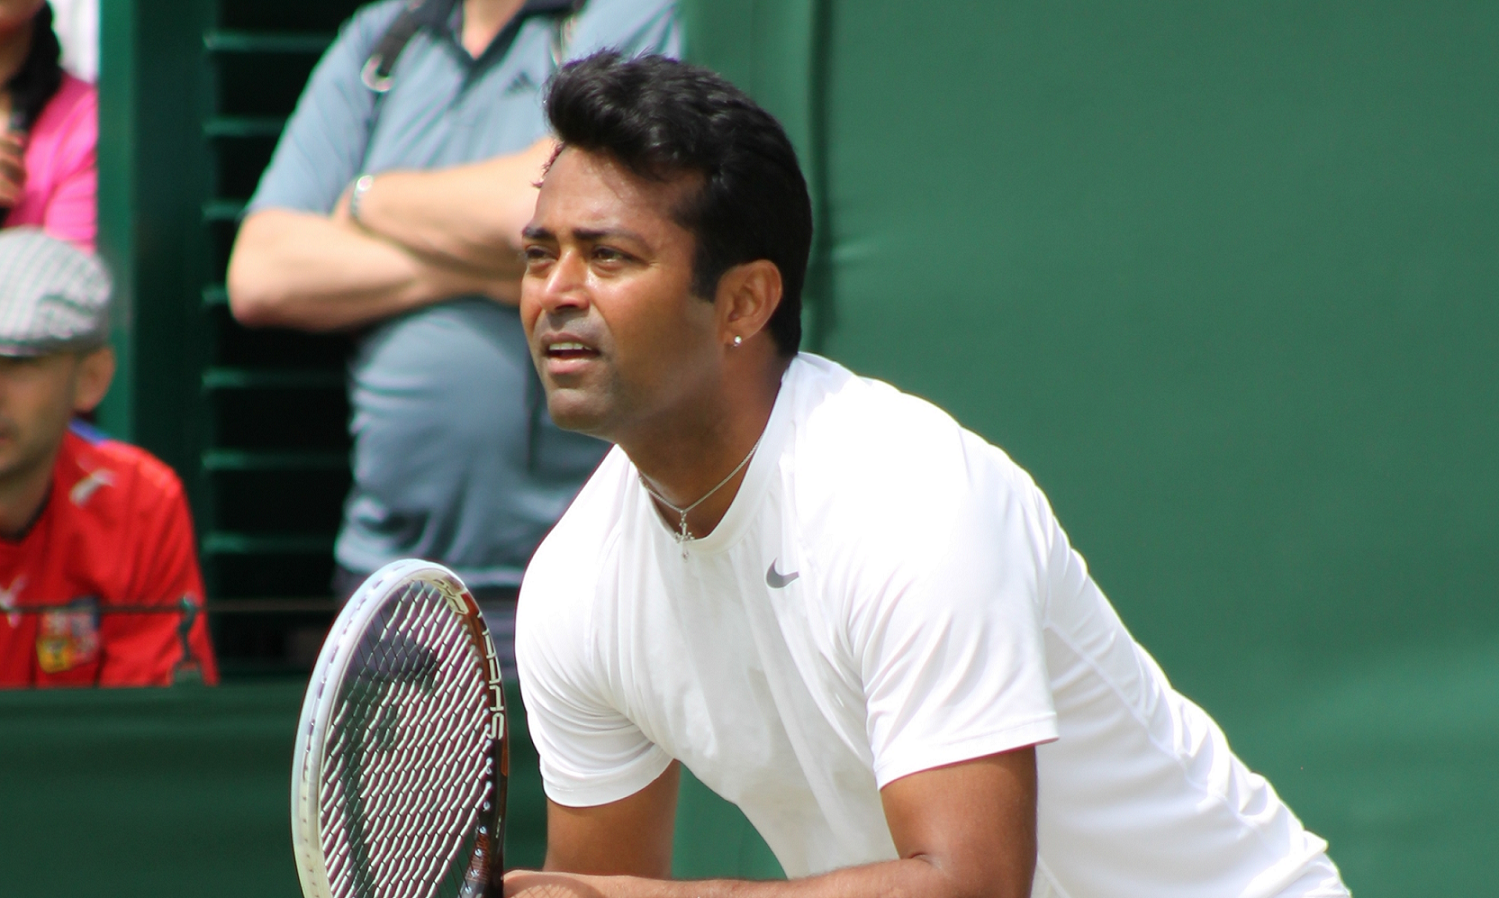 Here's Why Leander Paes Is Regarded As India's Best Tennis Player Ever